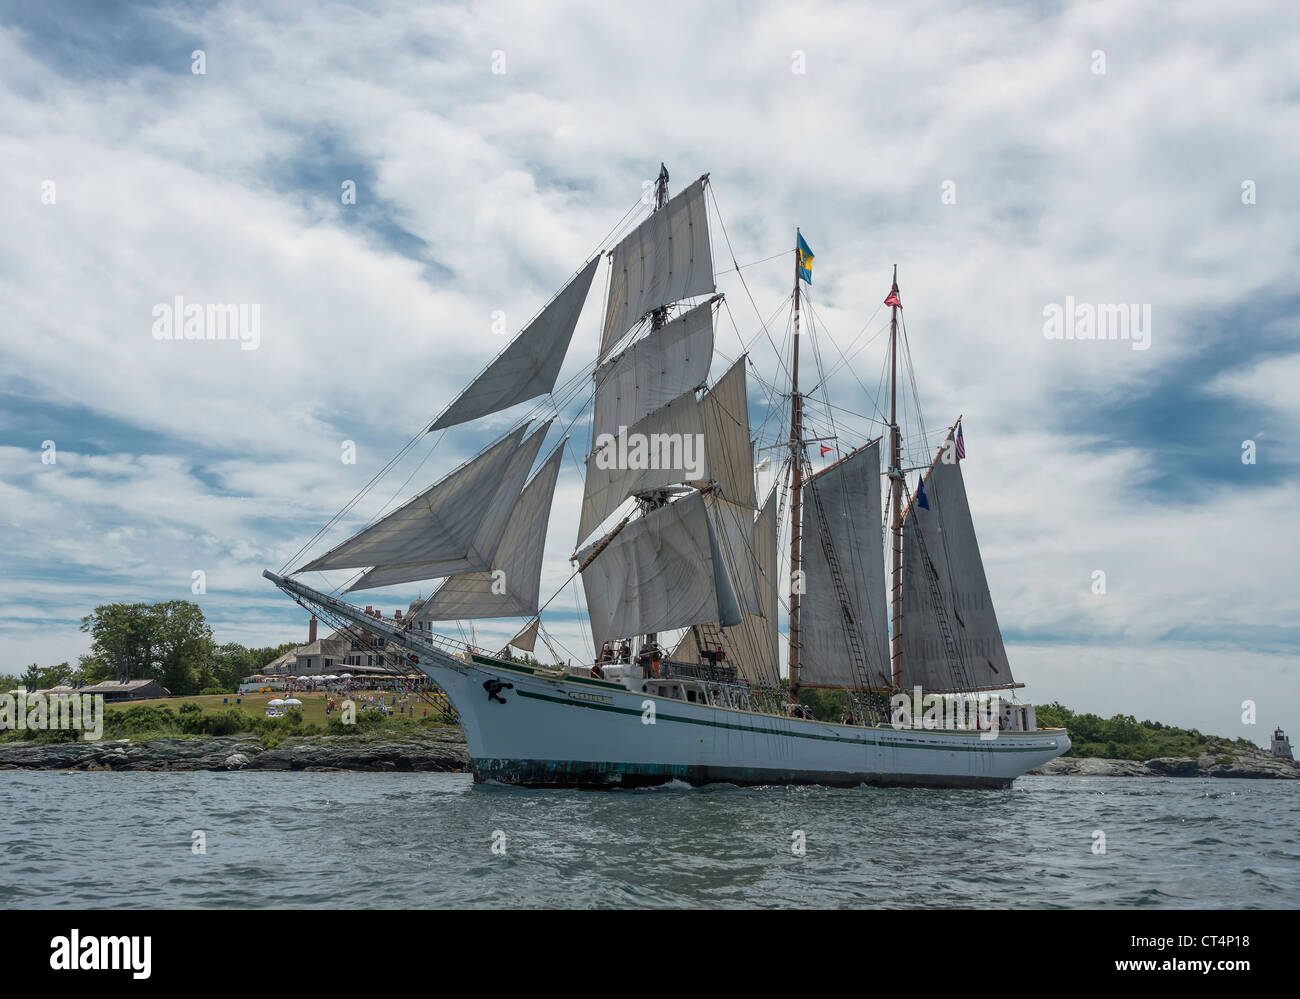 Tall Ship sailing in Newport Rhode Island - Stock Image